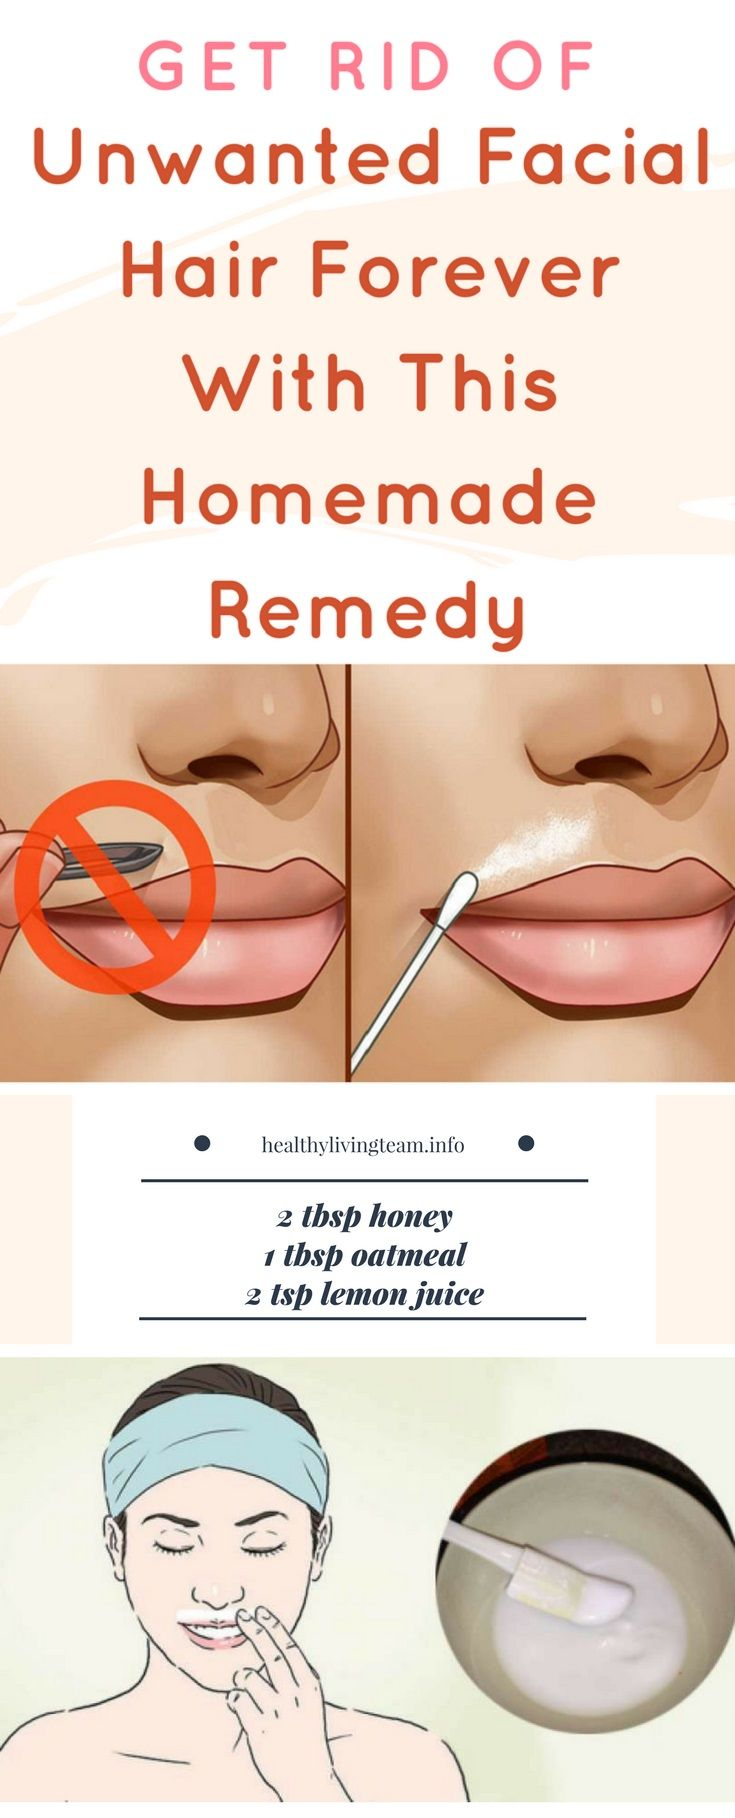 Natural Home Remedy for Unwanted Facial Hair